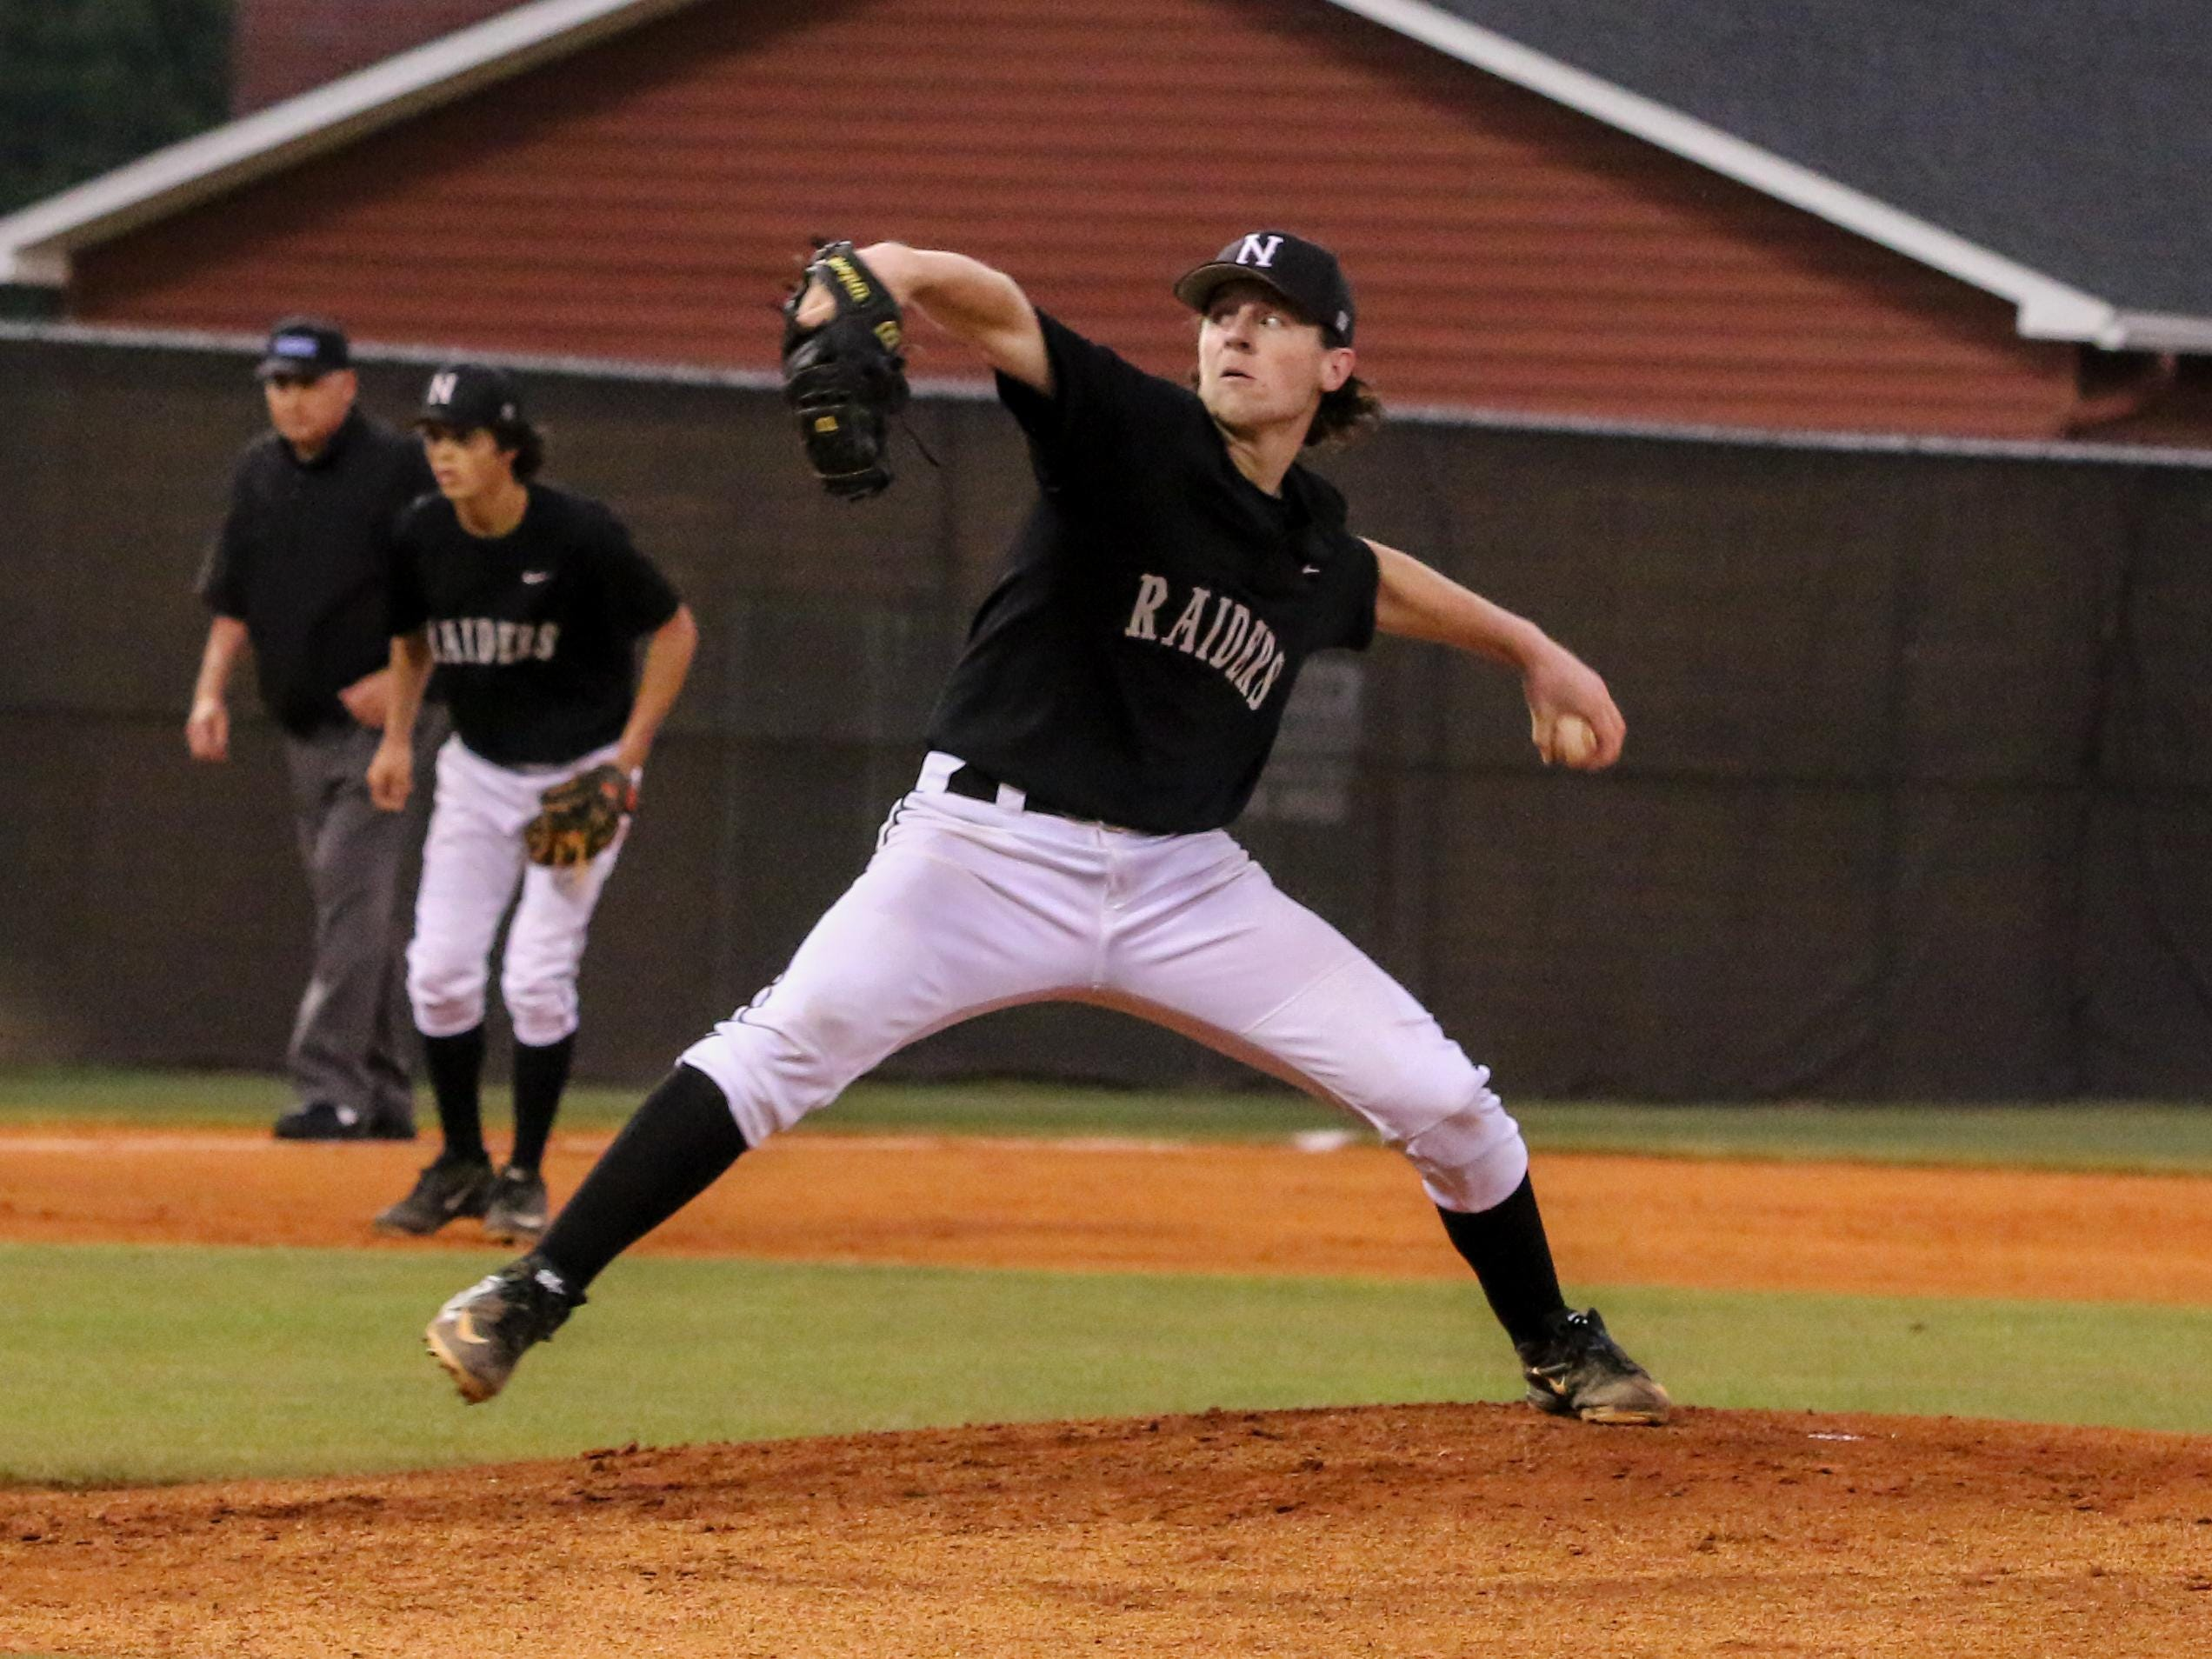 Navarre's Matt Cronin pitches against Tate Wednesday night during the Region 7A quarterfinal game at Tate High School.